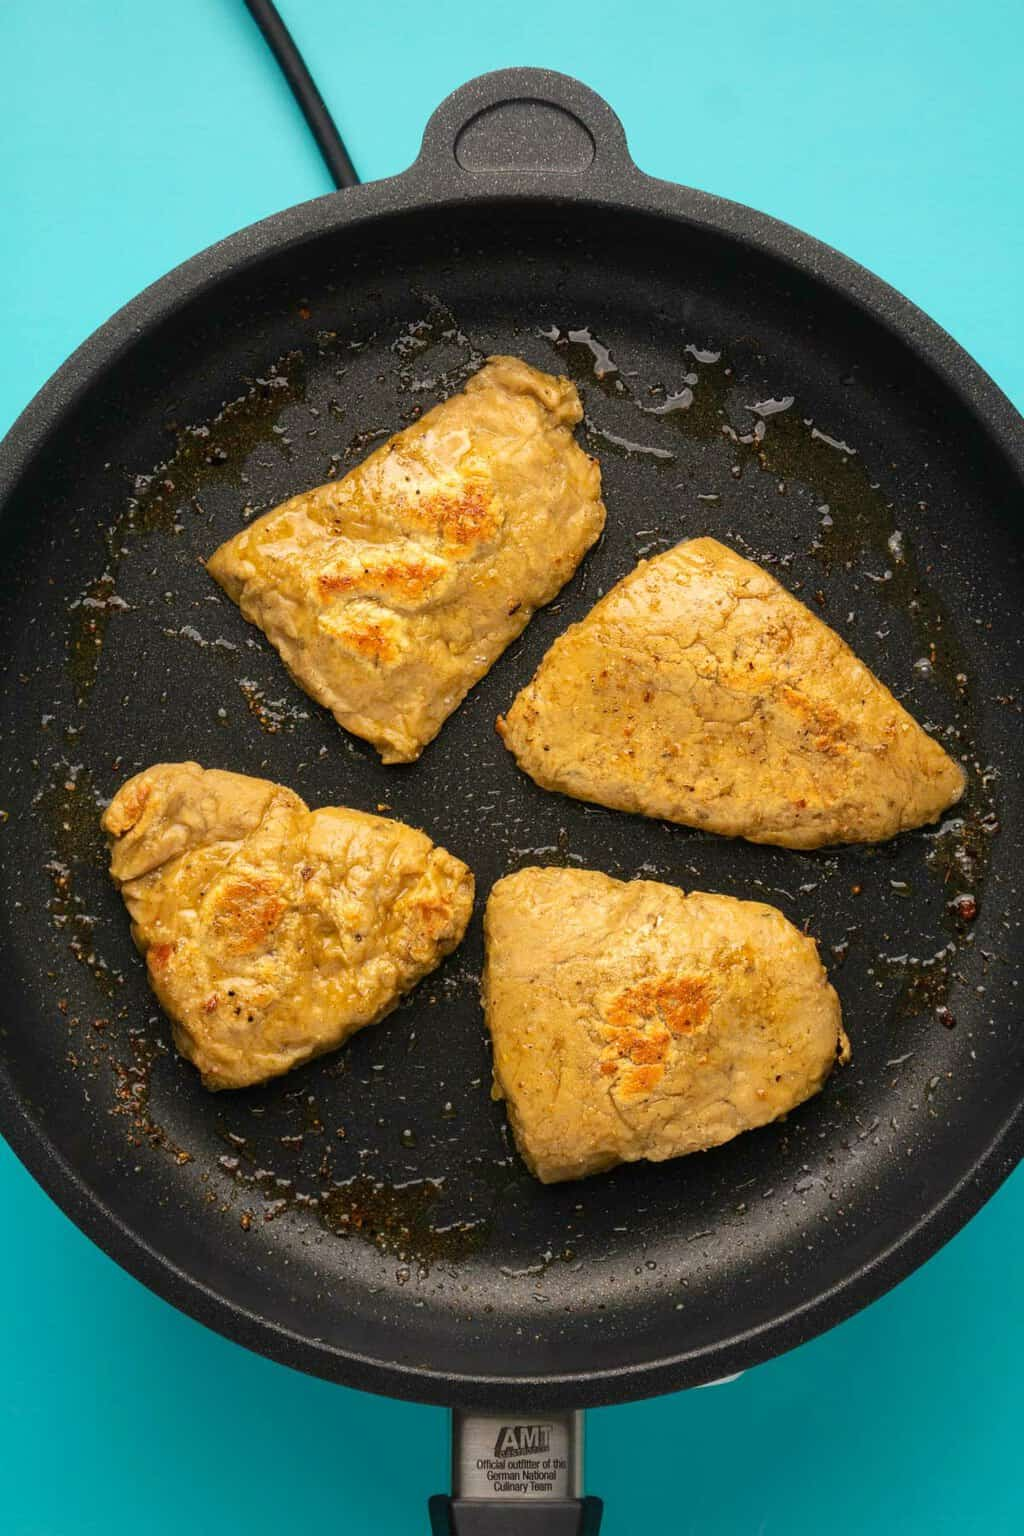 Vegan chicken fillets frying in a frying pan.